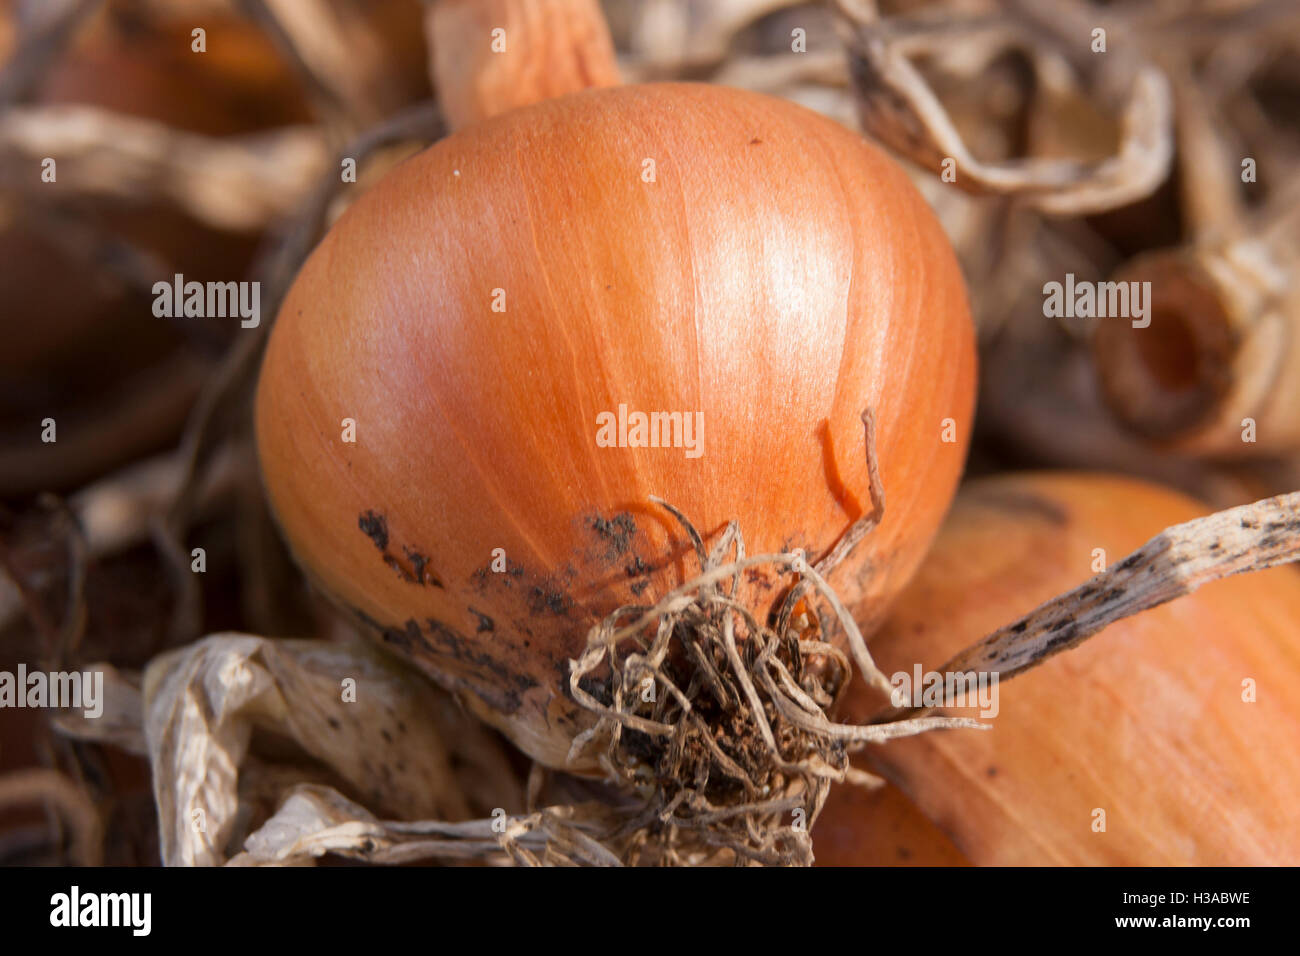 organic home grown onion vegetable closeup on bed of of withered foliage - Stock Image